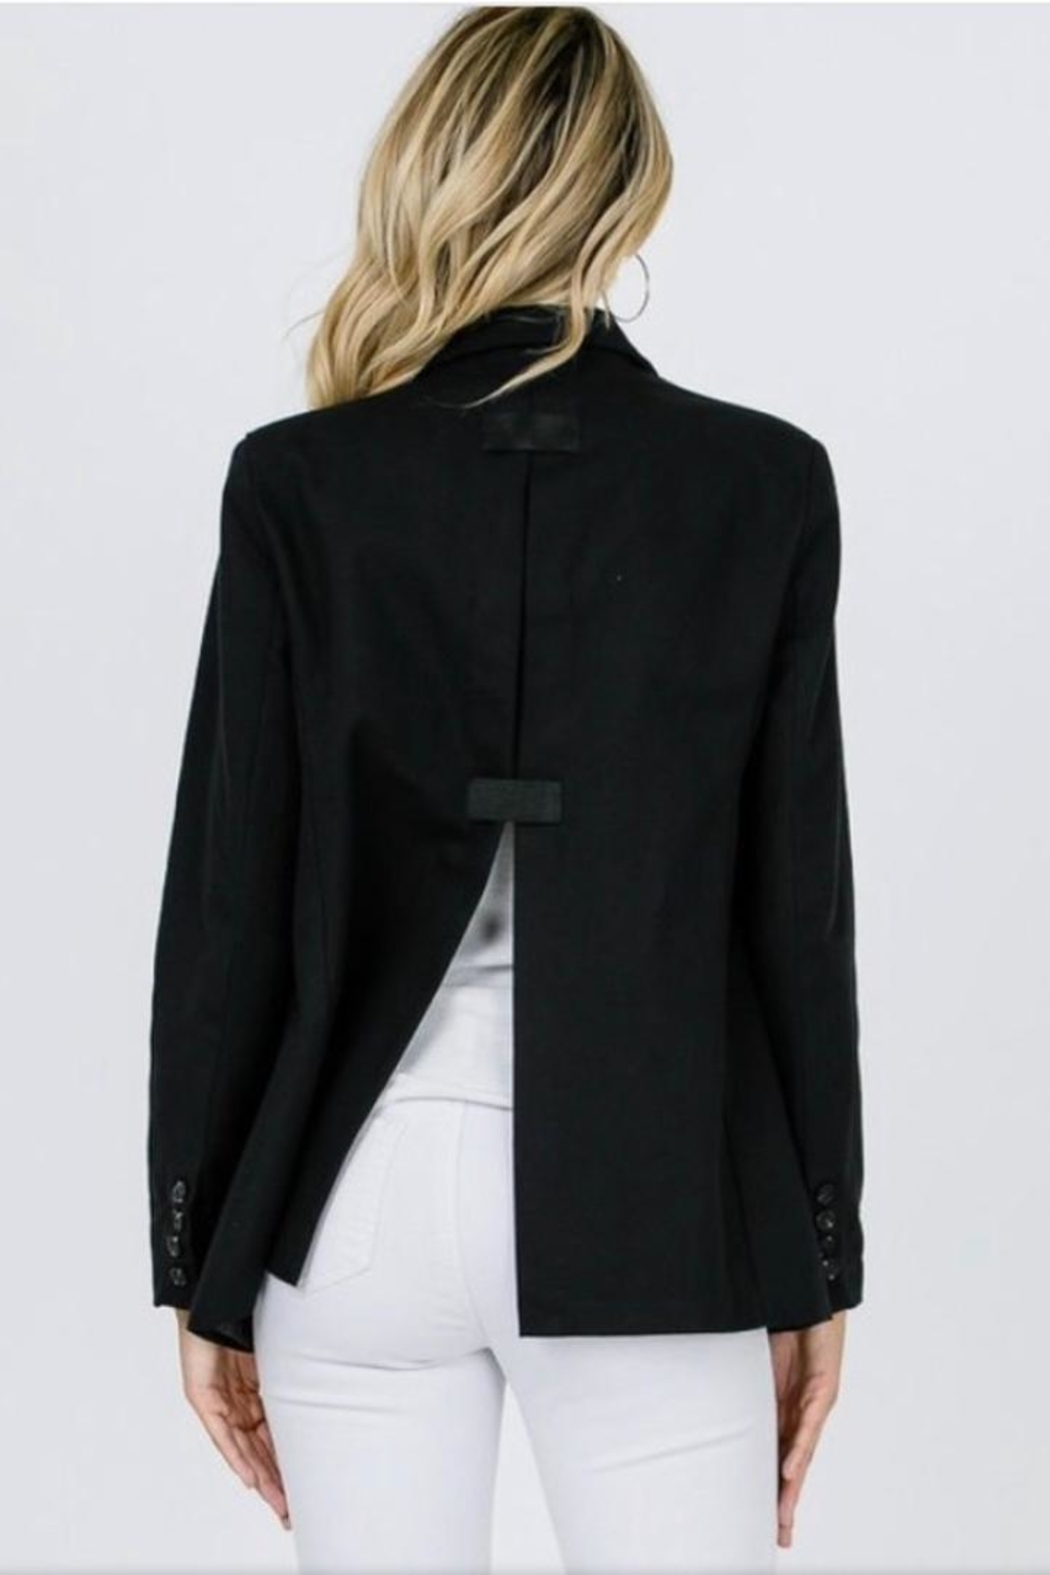 Salt Black Split Blazer - Main Image